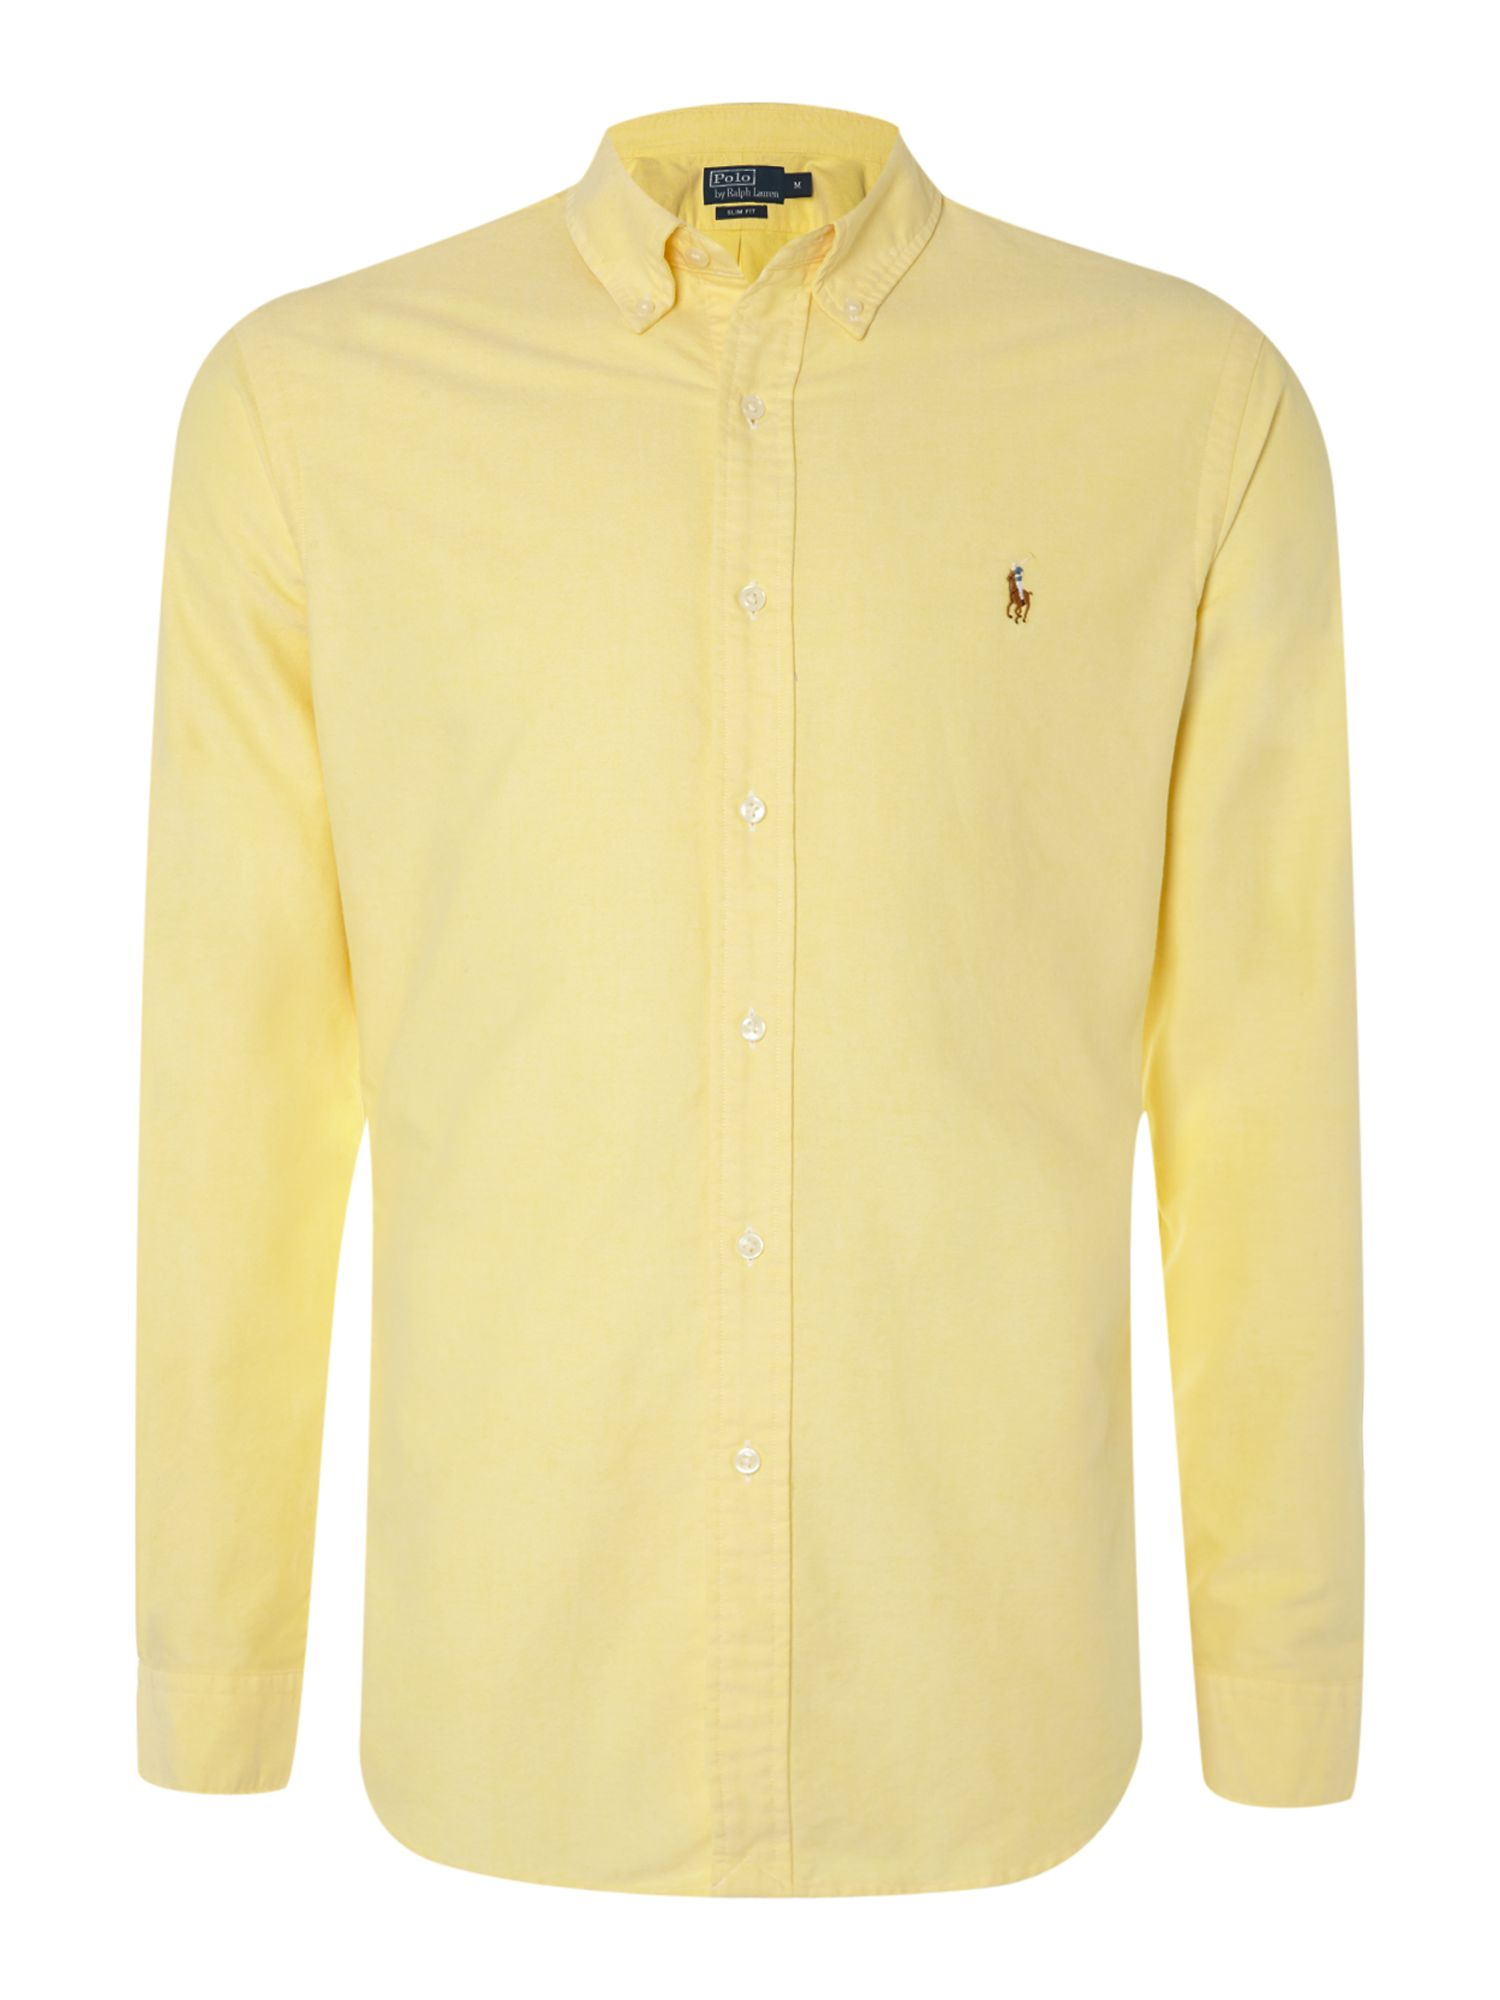 Polo ralph lauren Classic Long Sleeve Shirt in Yellow for Men | Lyst